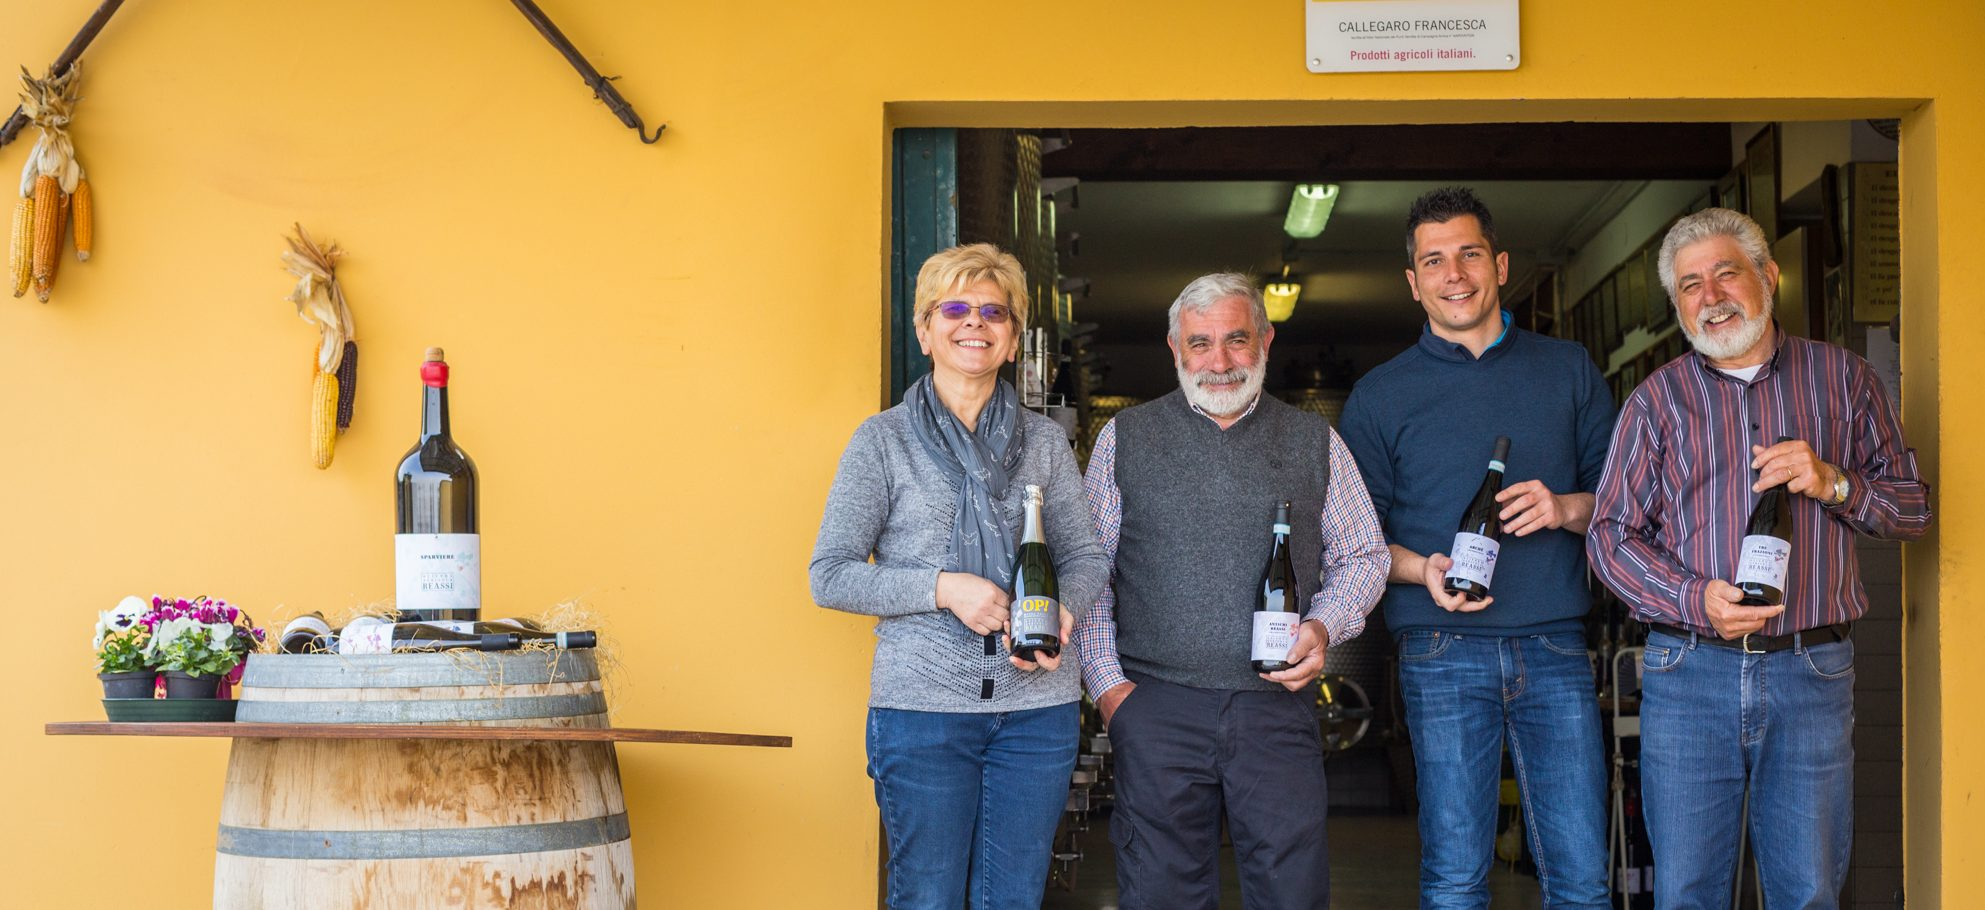 From Volcanic hills, Reassi wines